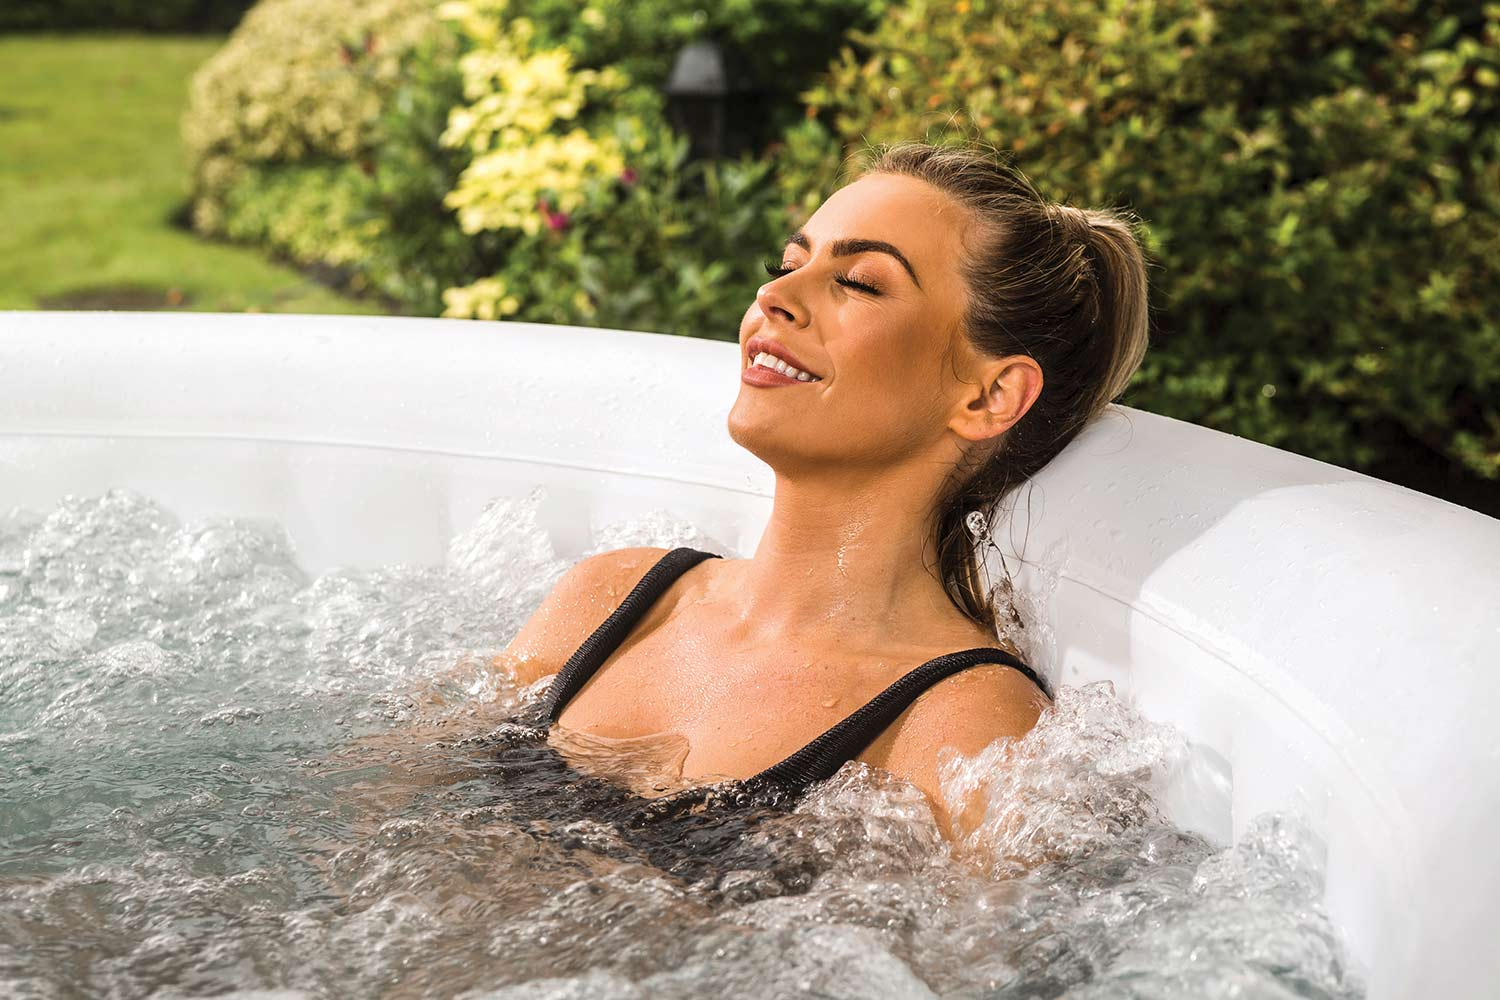 Five Tips For Relaxation in 2019